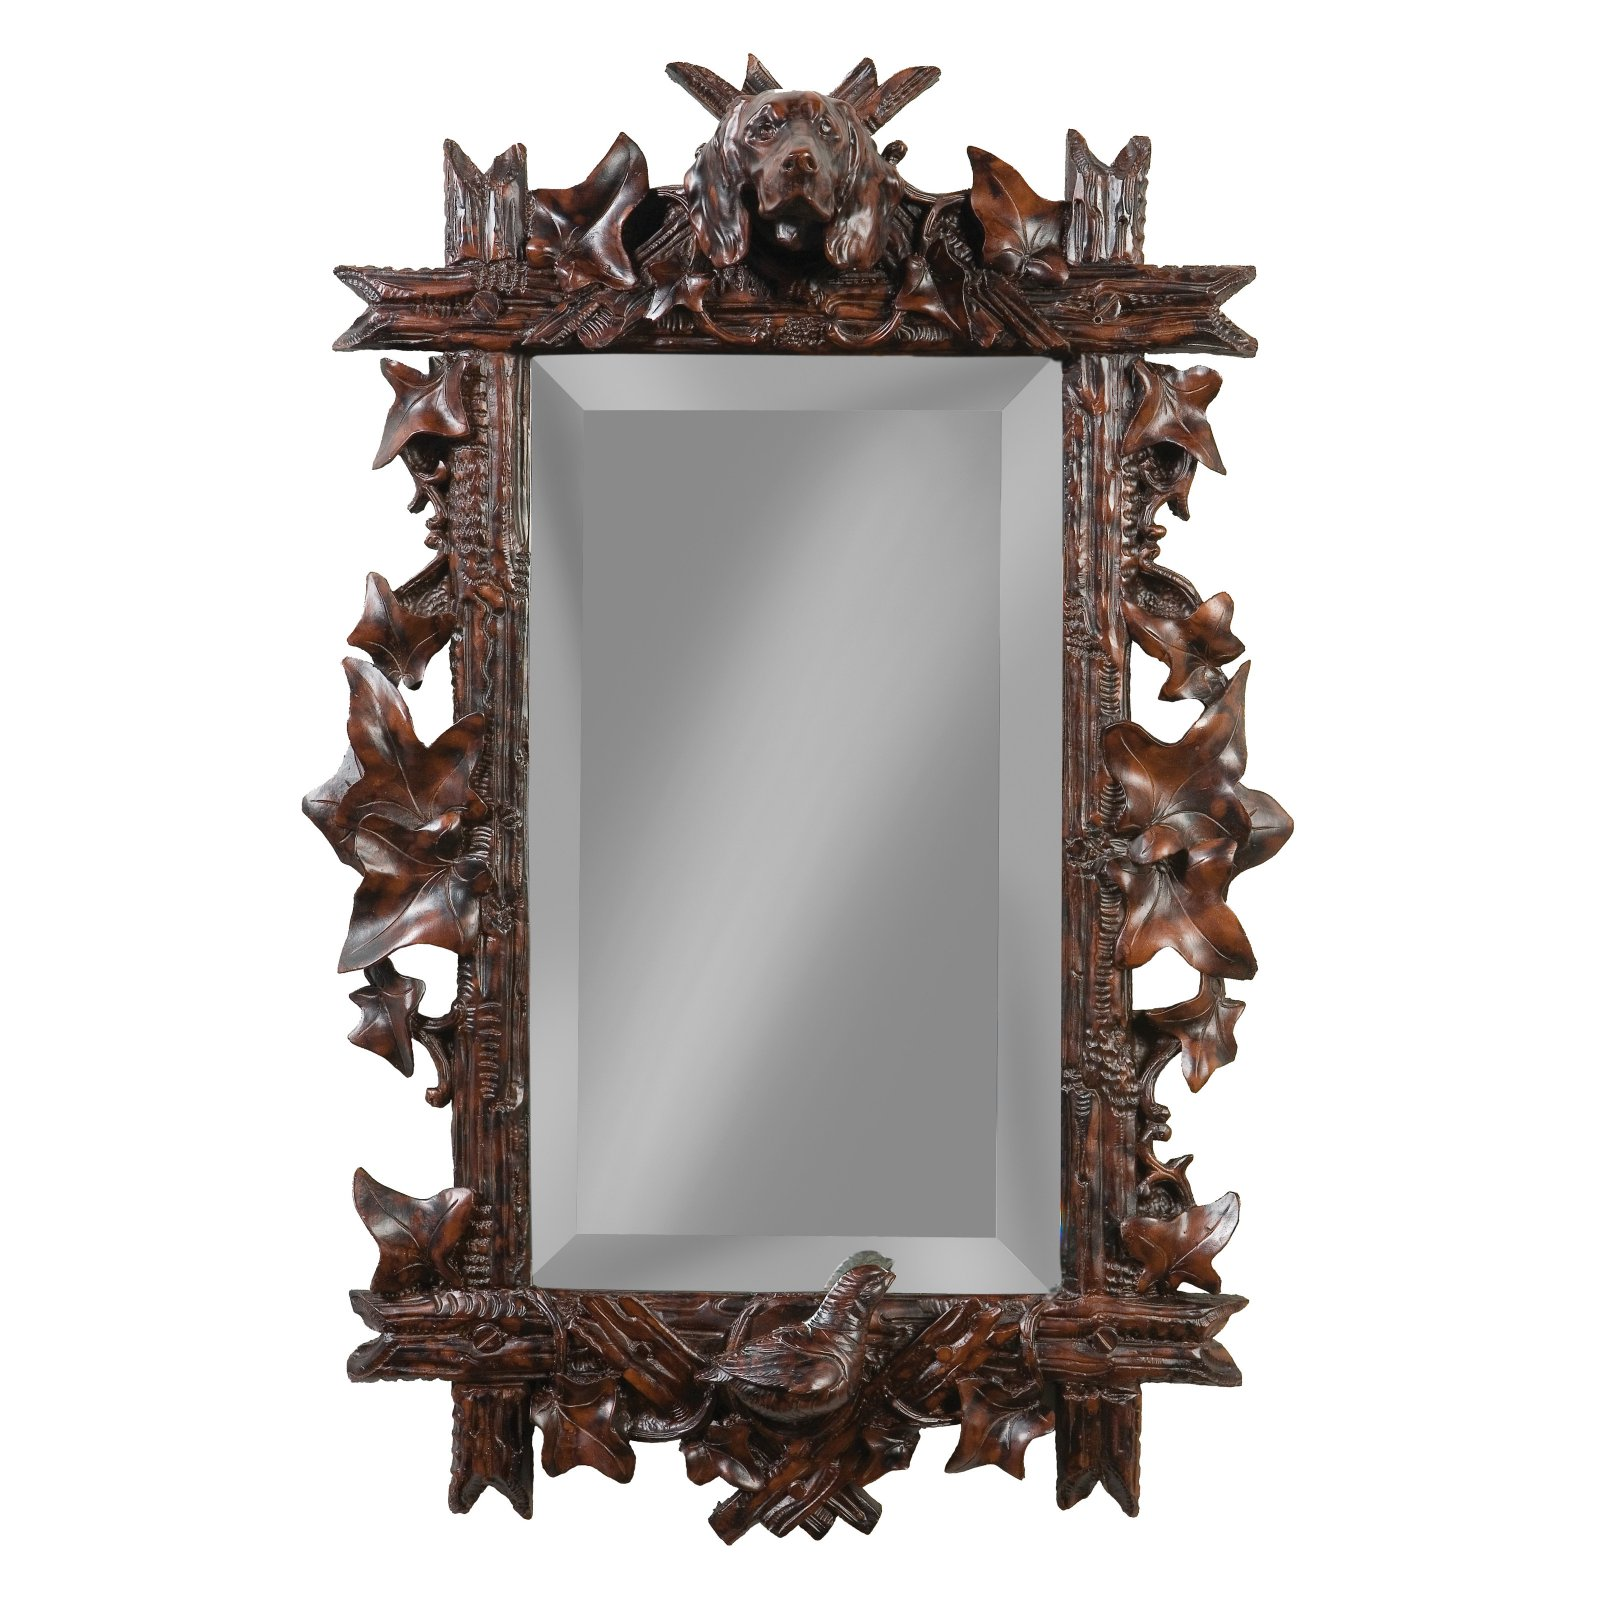 Oklahoma Casting Dog and Quail Bevel Wall Mirror